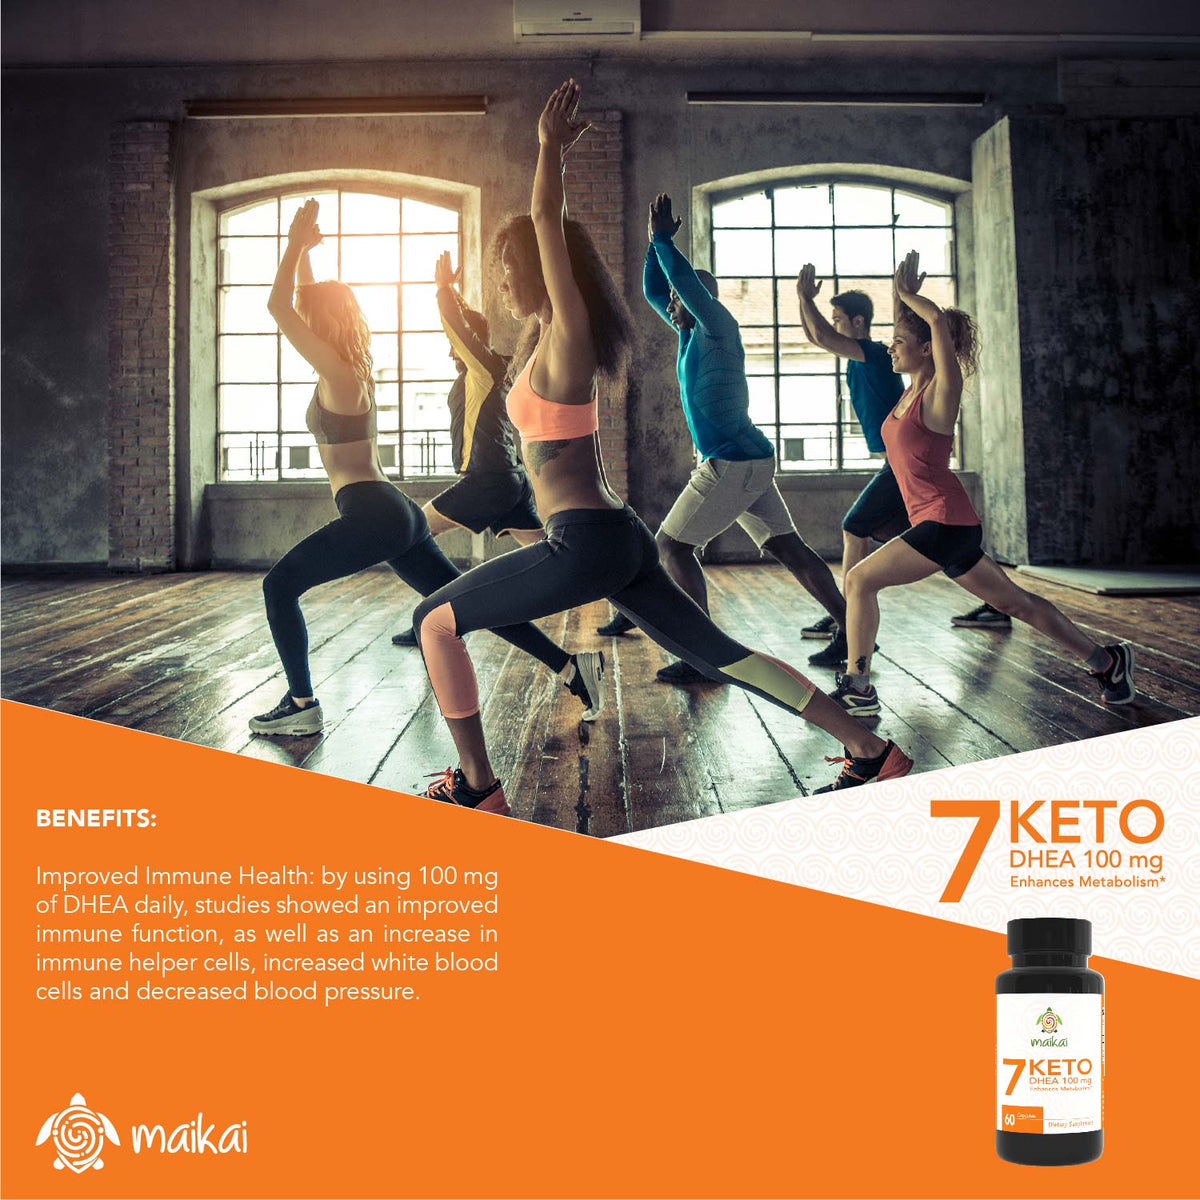 7 Keto DHEA, 100 Mg, Enhances Metabolism and Promotes Weight Loss, 60 Softgels